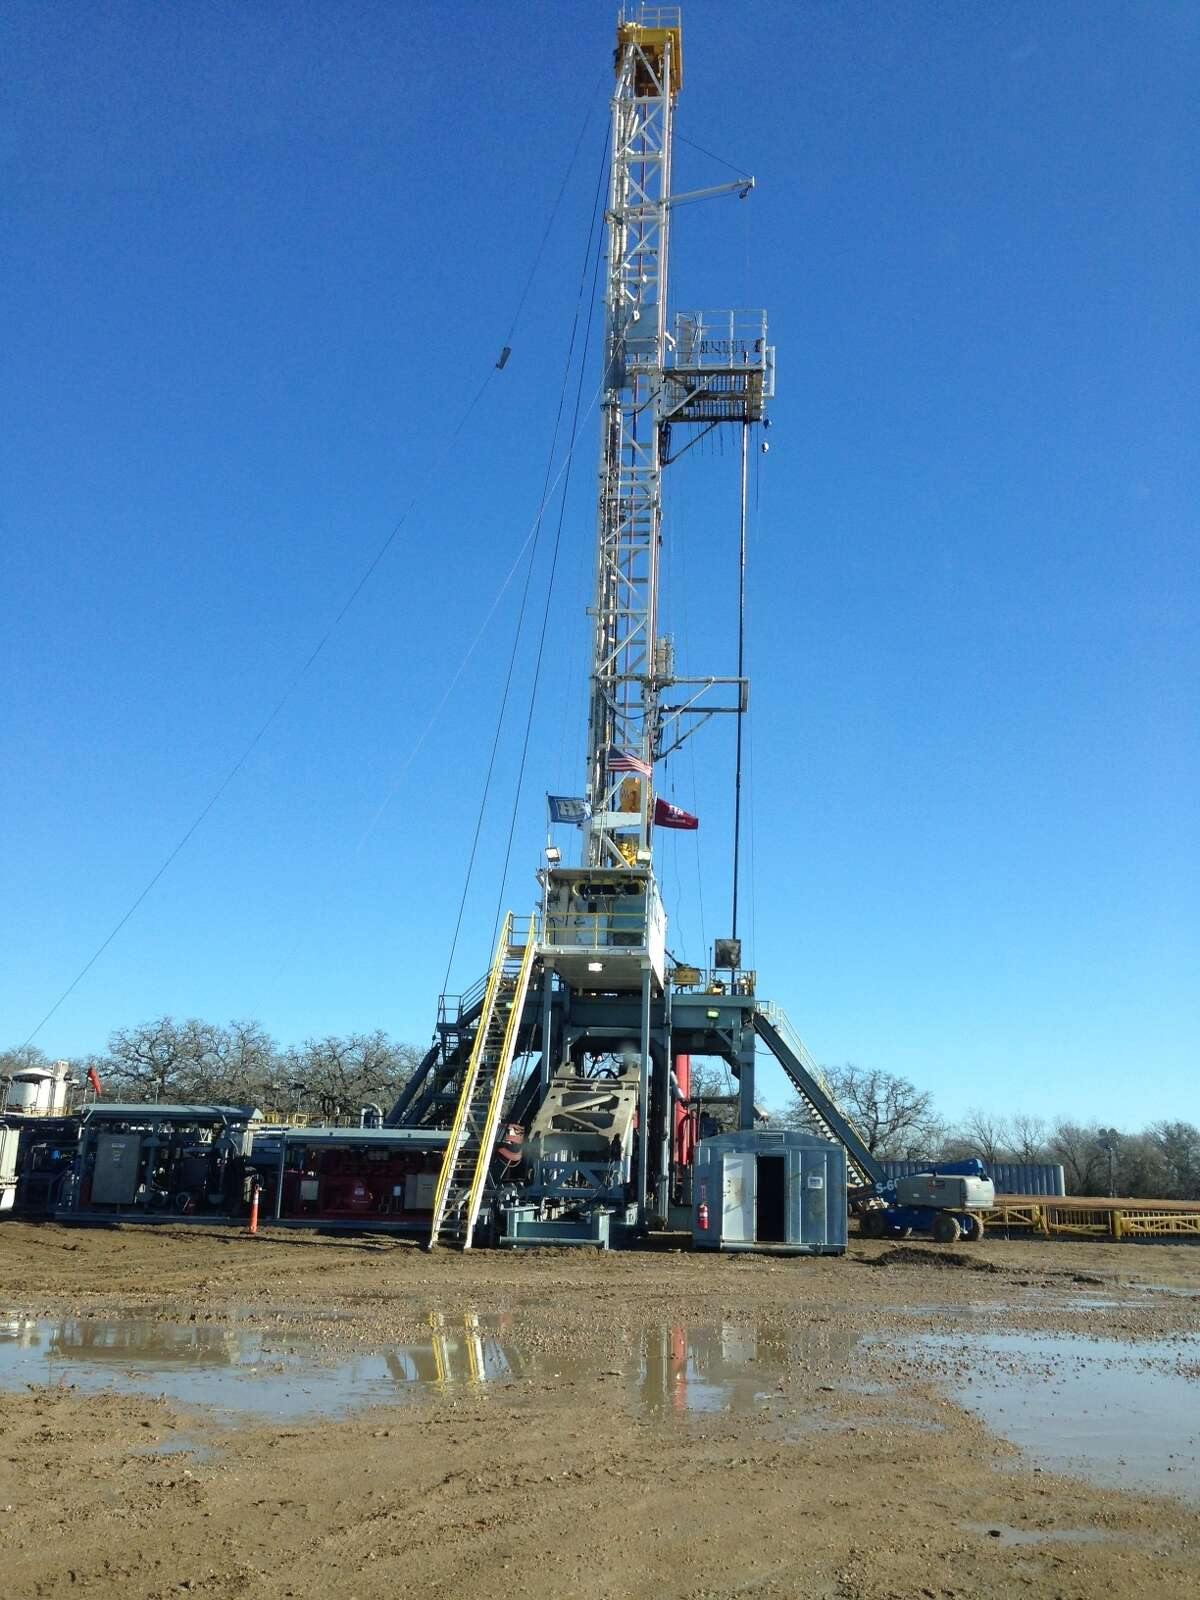 This Laredo Energy rig is working in Brazos County. The company plans to add an oil drilling program focused on the Eaglebine play in East Central Texas.